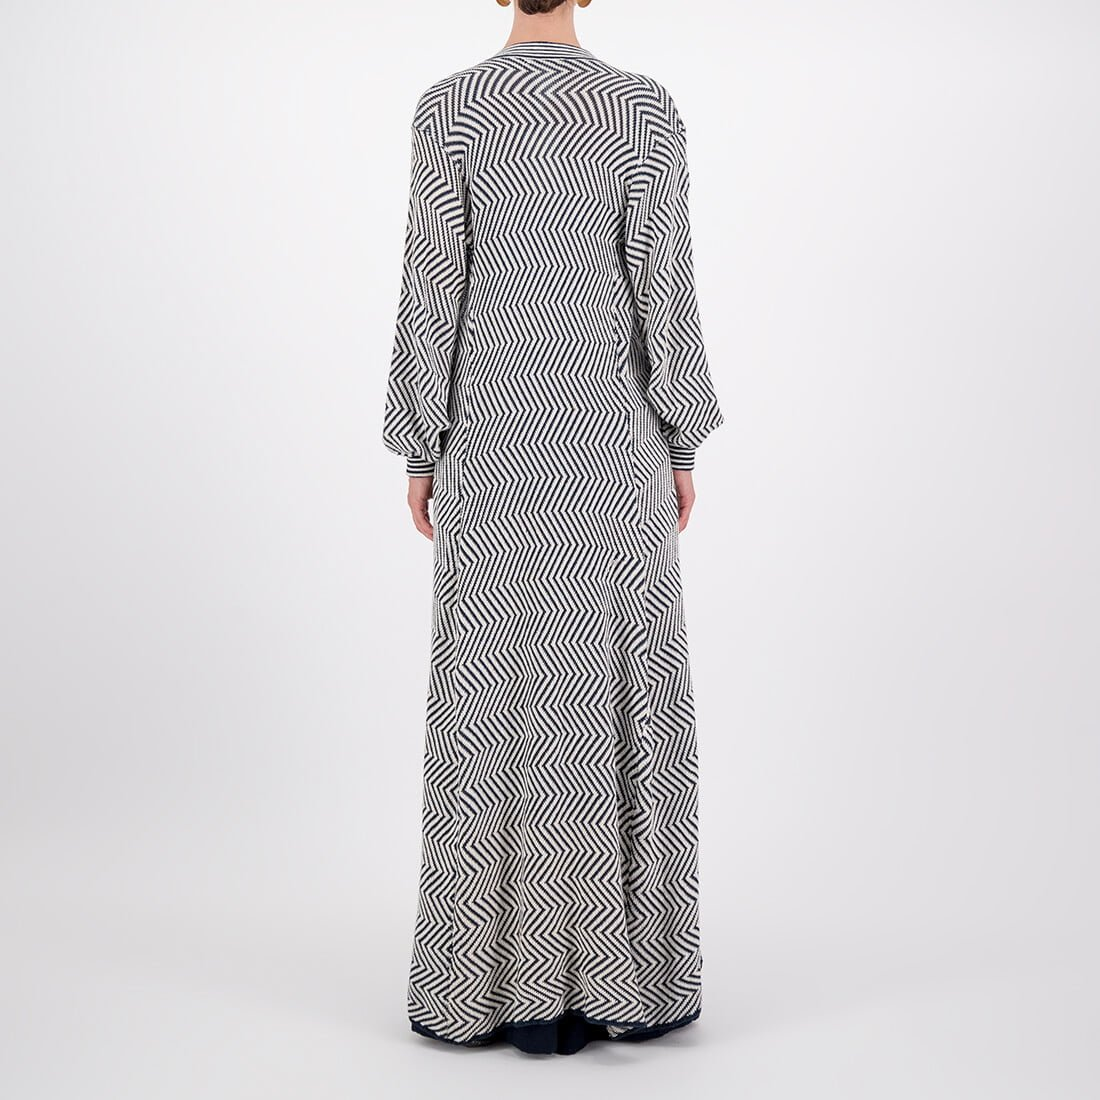 Machine-knit, floor-length kimono with long sleeves 3